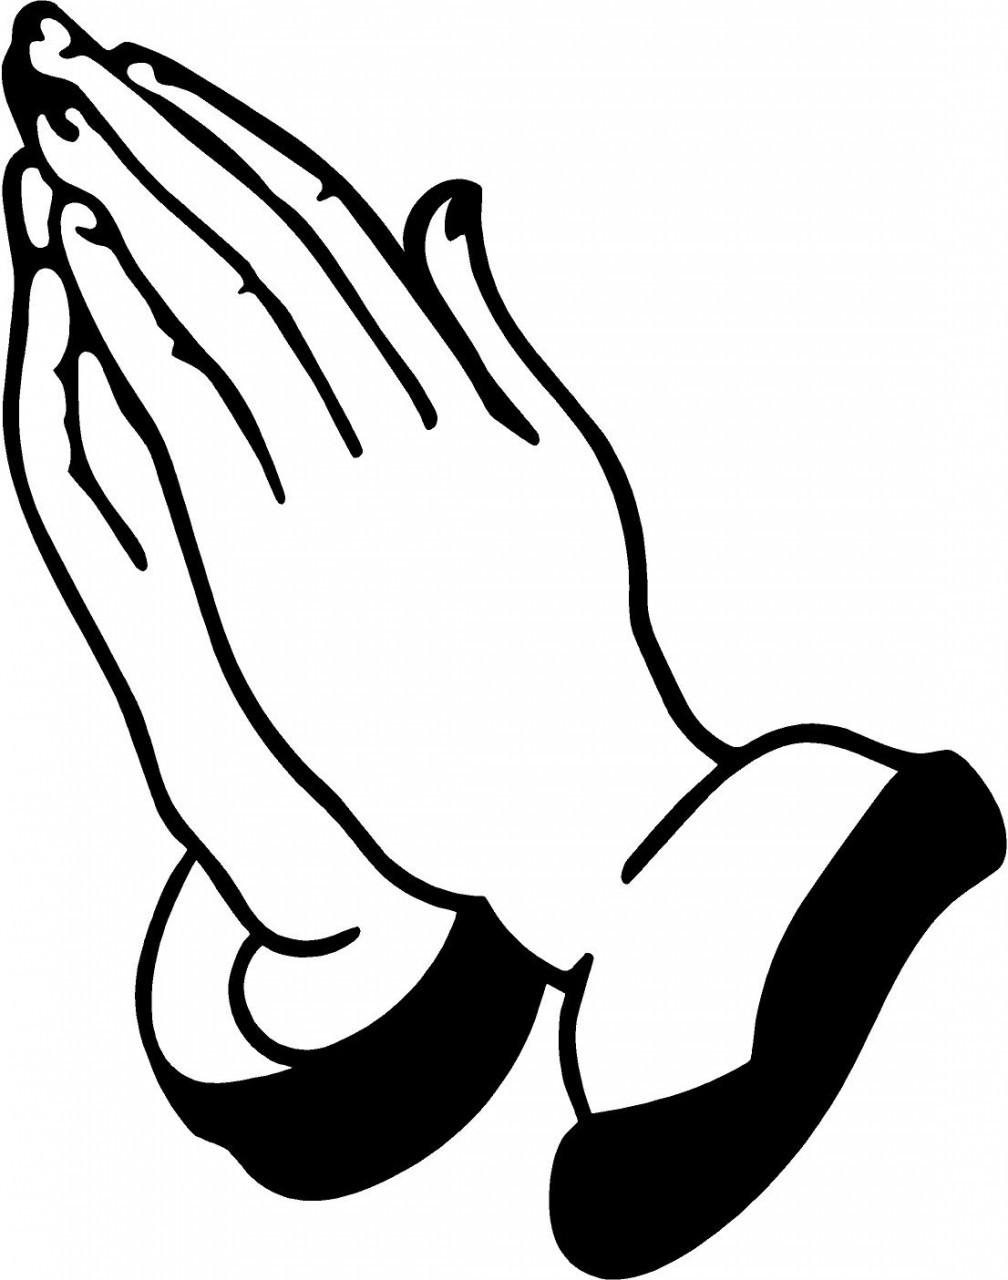 Prayer Hands Clipart Clipart .-Prayer Hands Clipart Clipart .-6